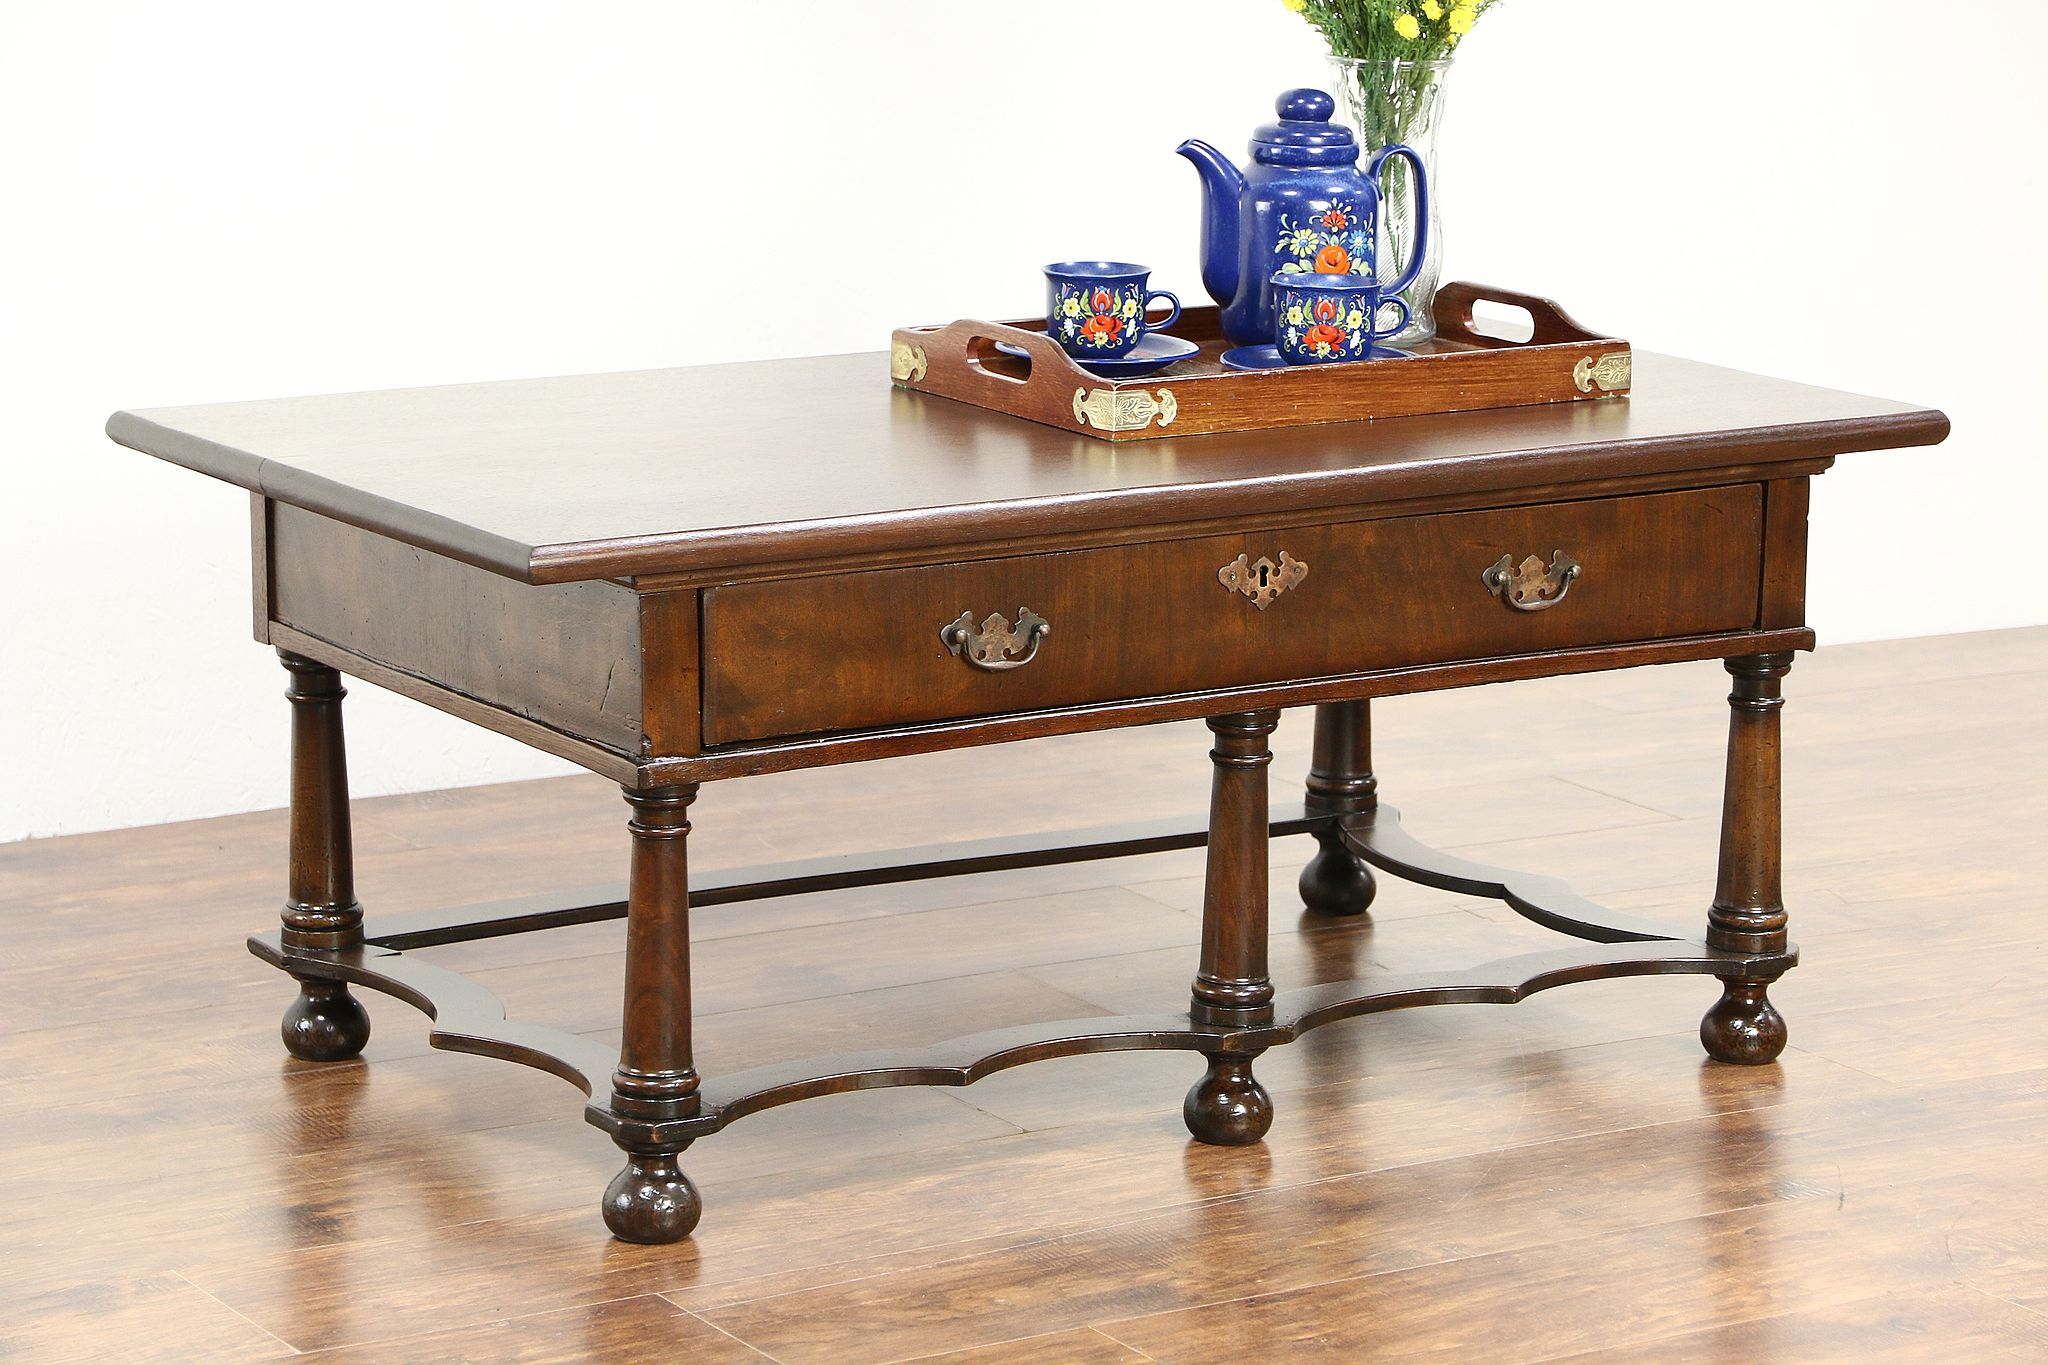 SOLD Coffee Cocktail or Low TV Console Table 1870 Antique from